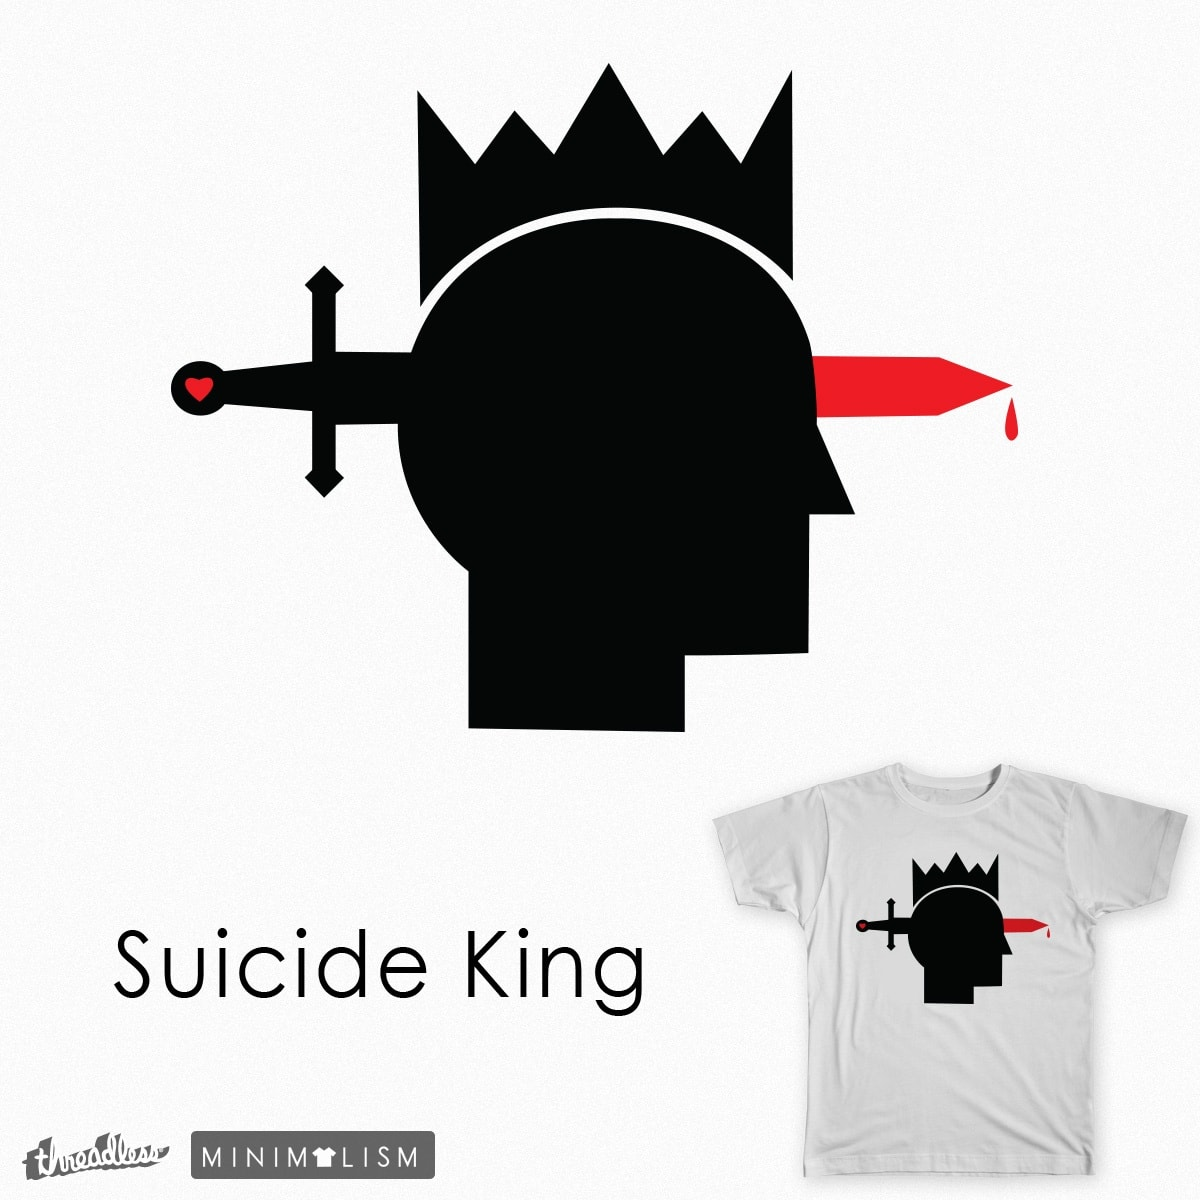 Suicide King by Kentack on Threadless